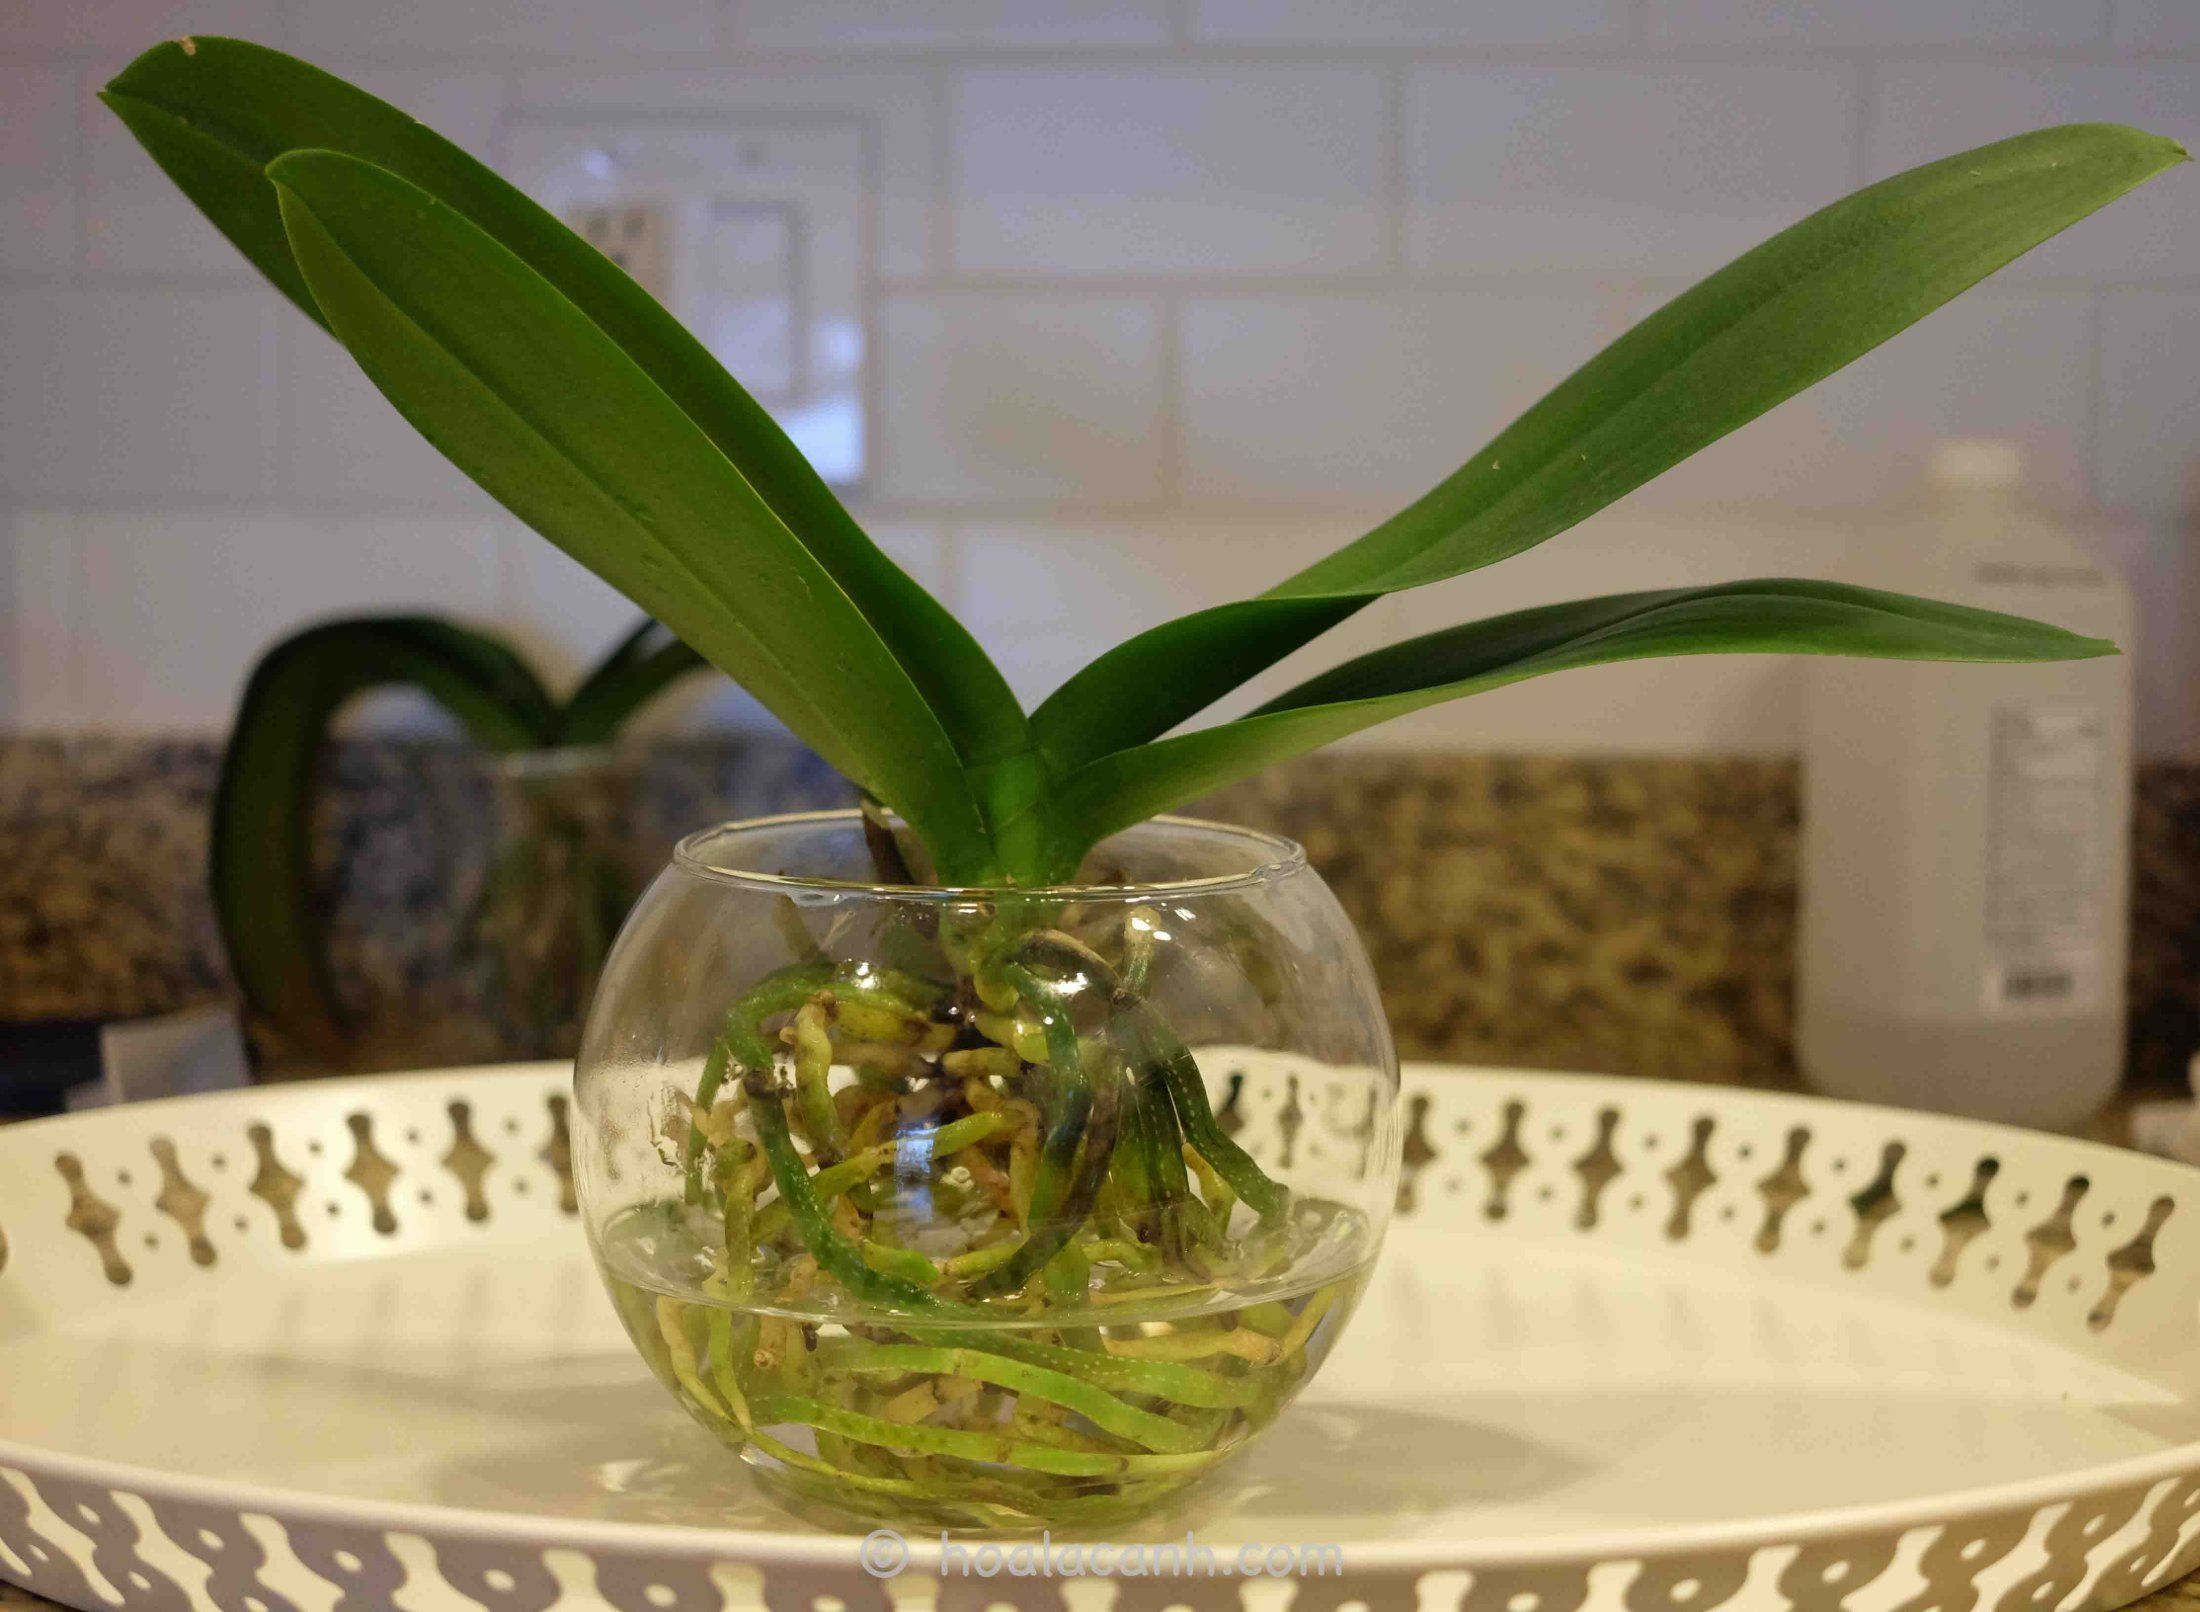 Growing Orchids in Water - aka: Water Culture is an amazing way to grow orchids, especially if you love being able to see all the lush, green, sexy root nubs like me.  Plus, without media, you don't have to worry about having creepy crawlies hiding in the media and eating those tender roots. #growingorchids